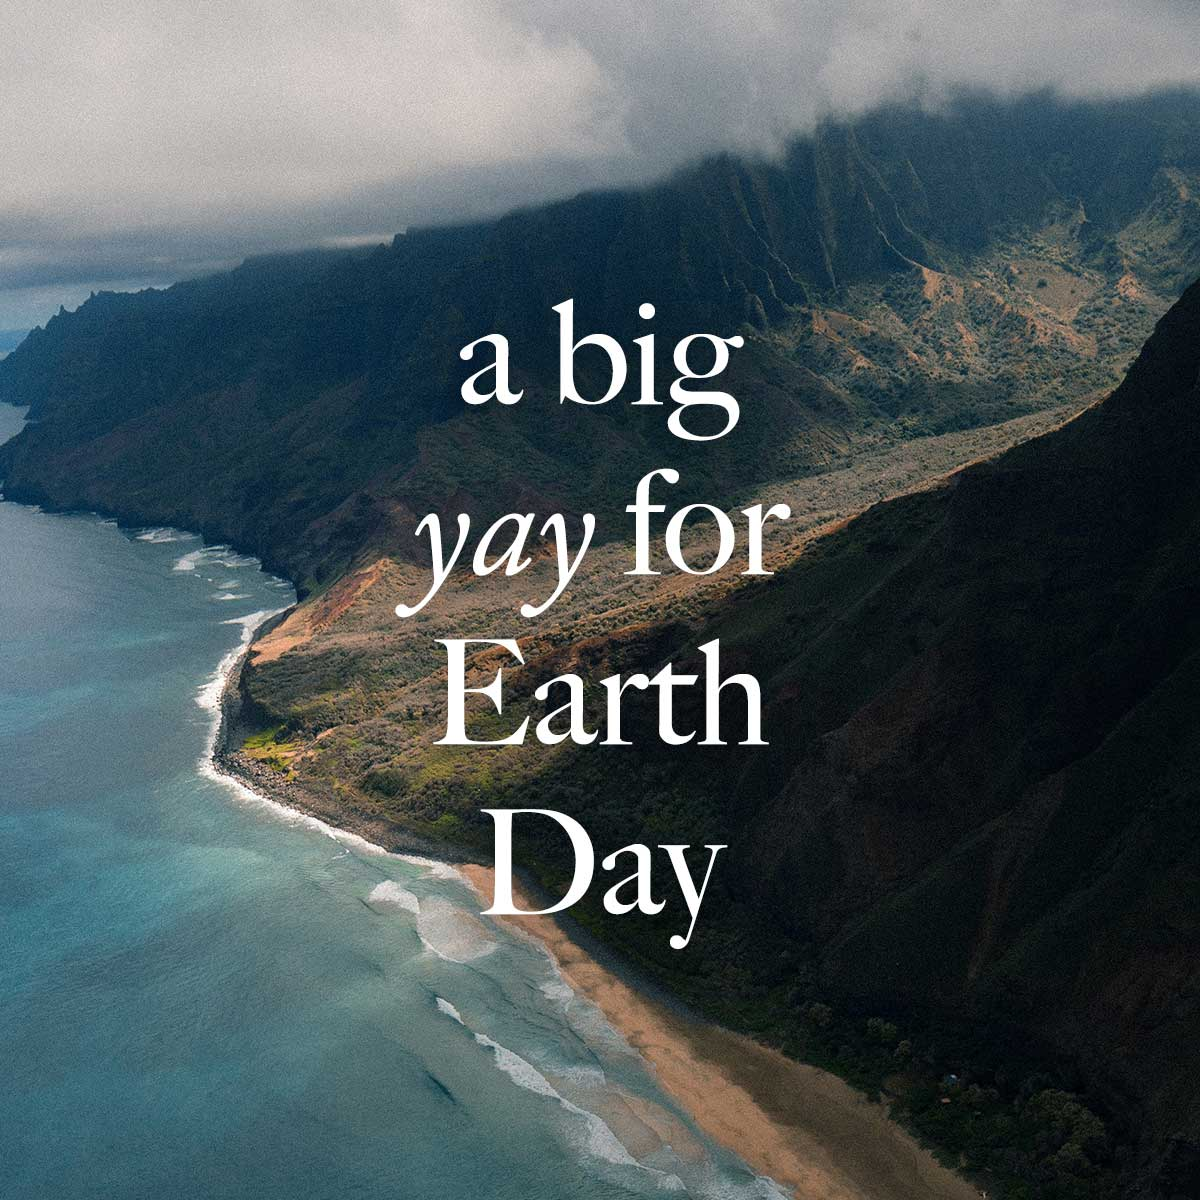 Let's Hear It For Earth Day!